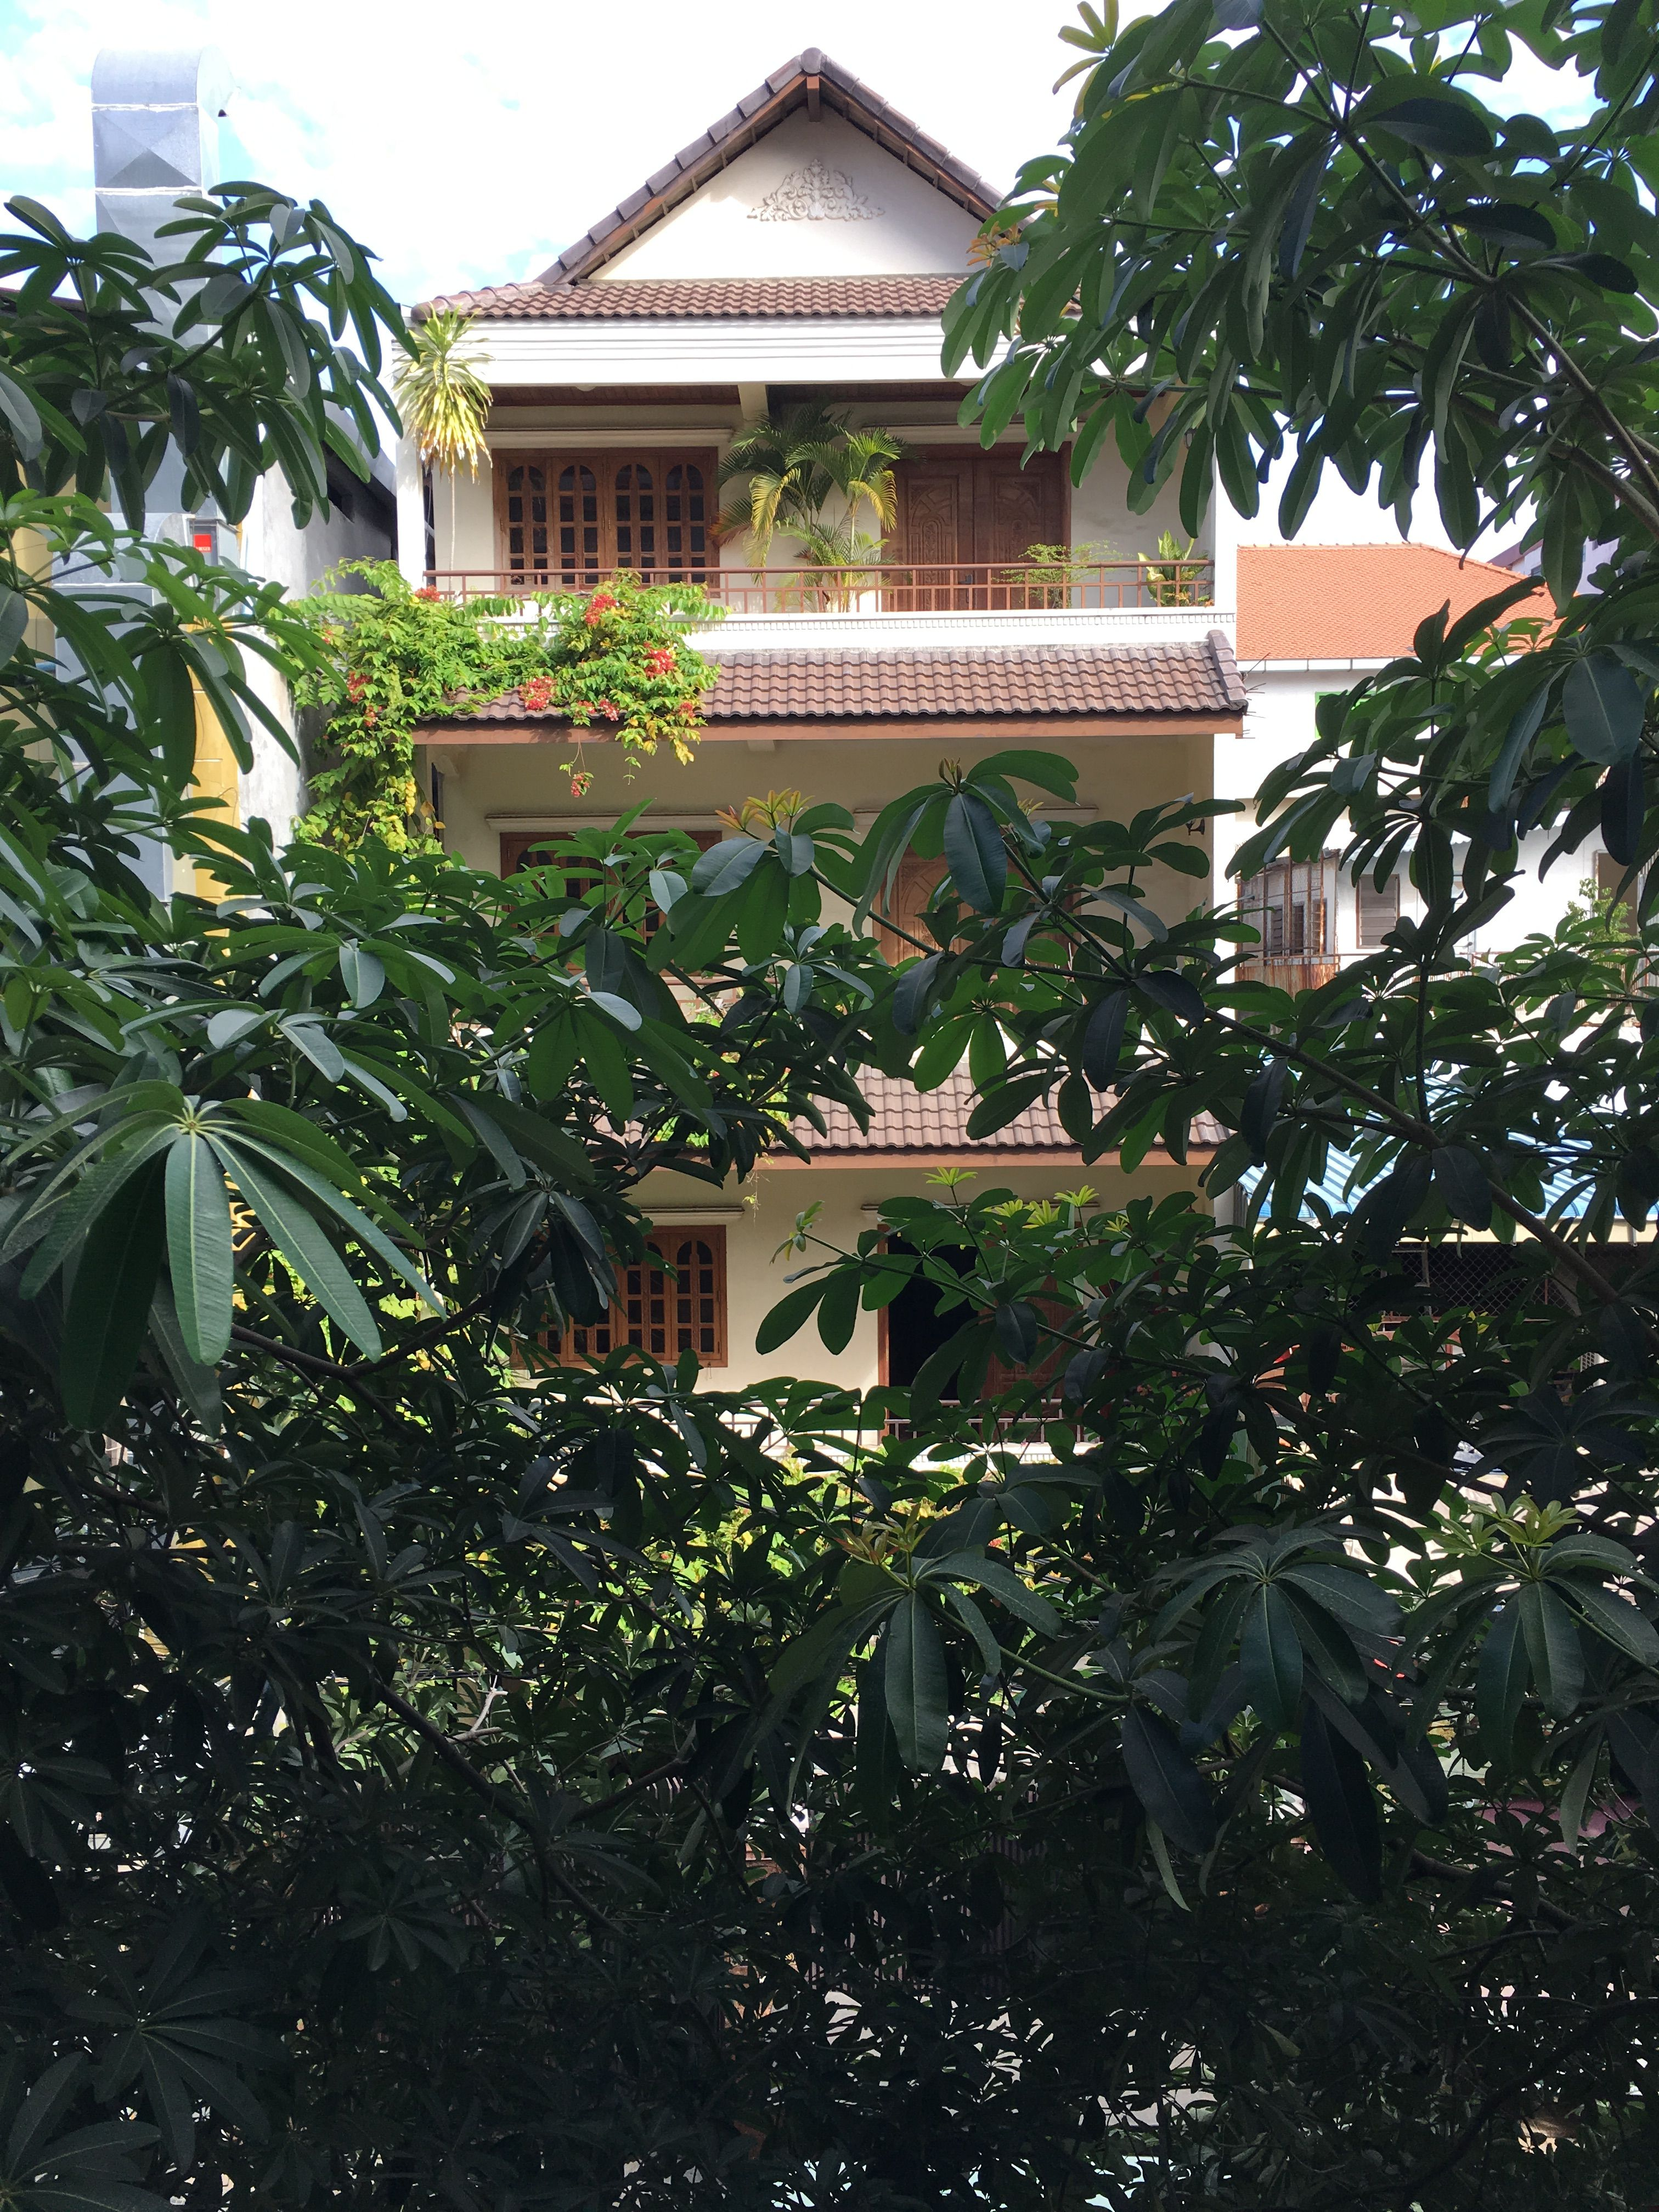 King Grand Boutique Hotel Phnom Penh Cambodia Boutique Hotel Hotel House Styles